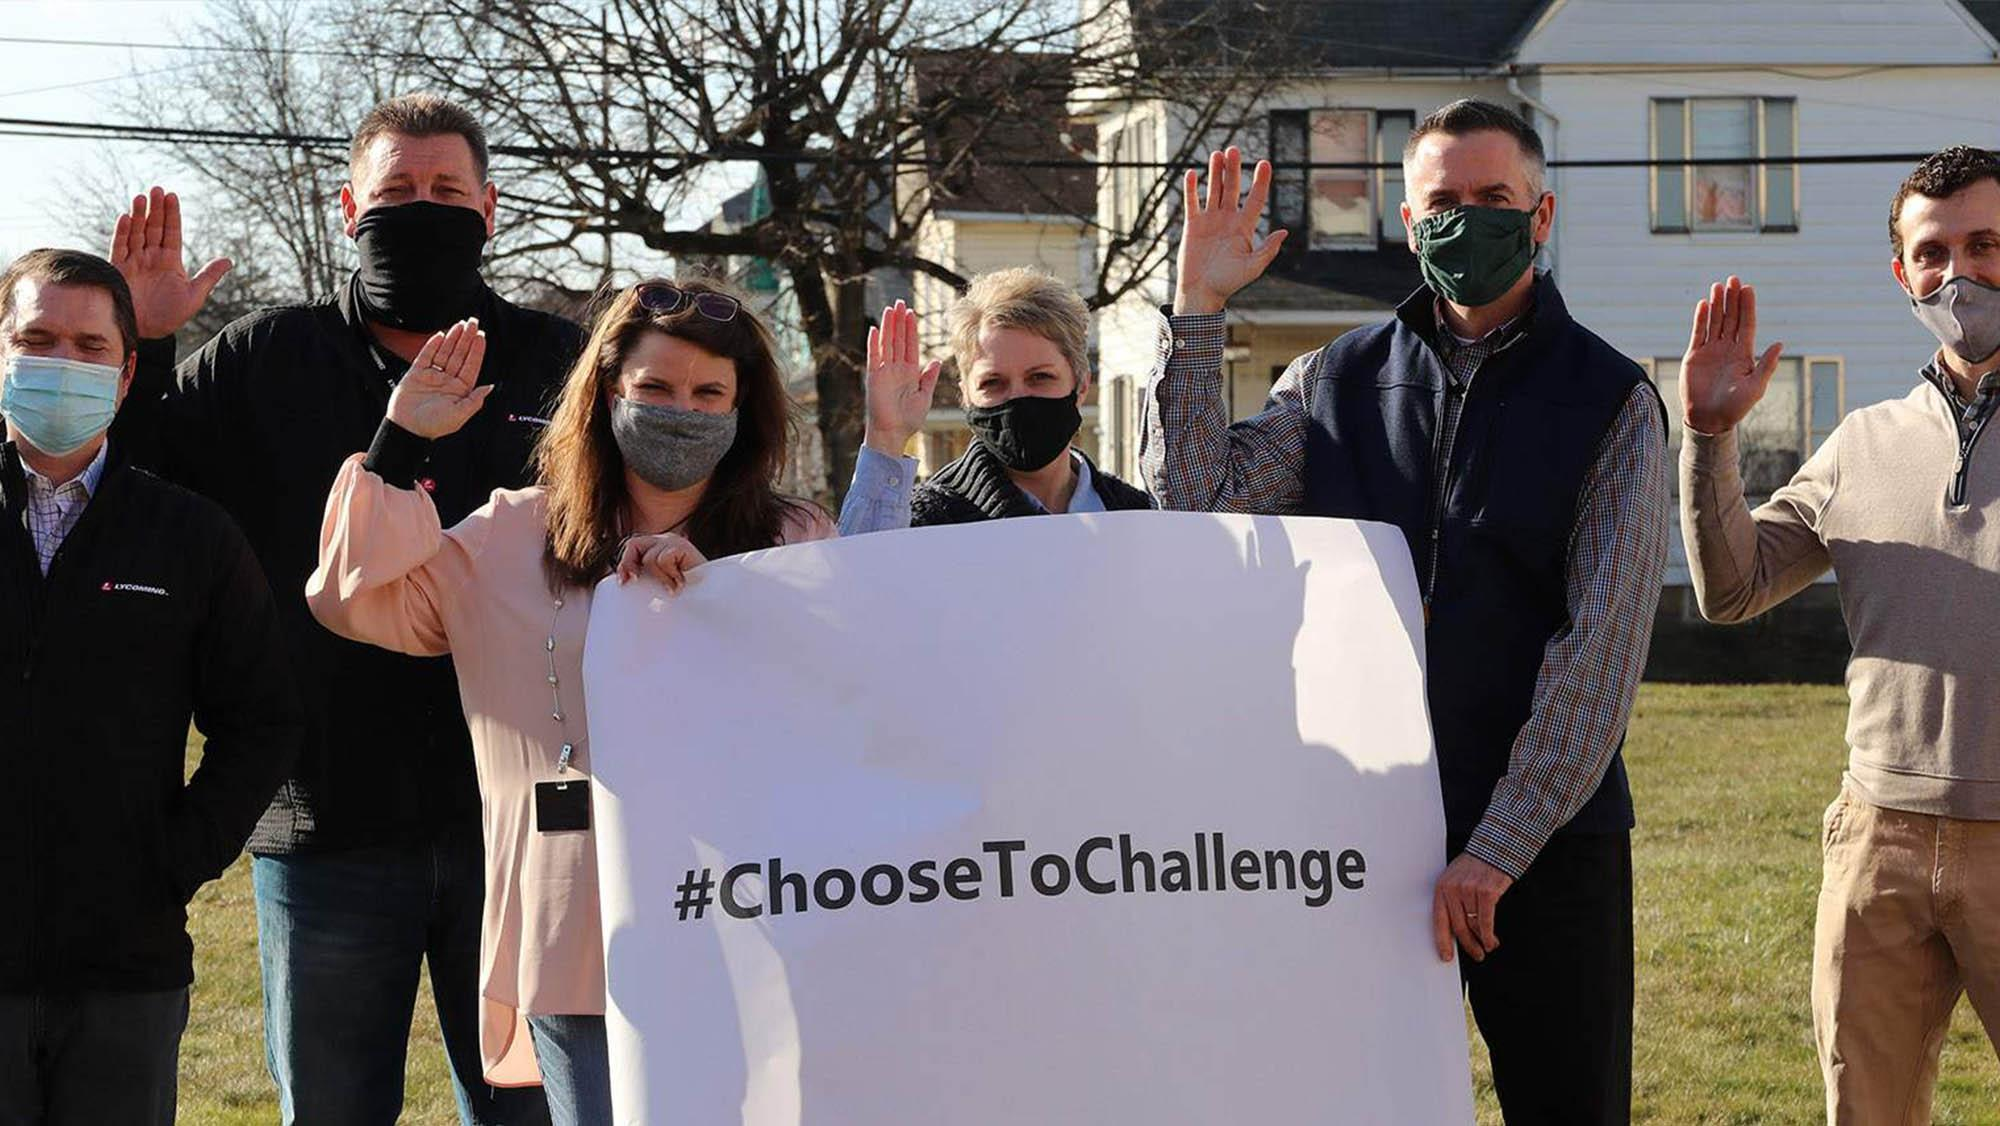 our Women's Network ERG members supported the #ChooseToChallenge campaign